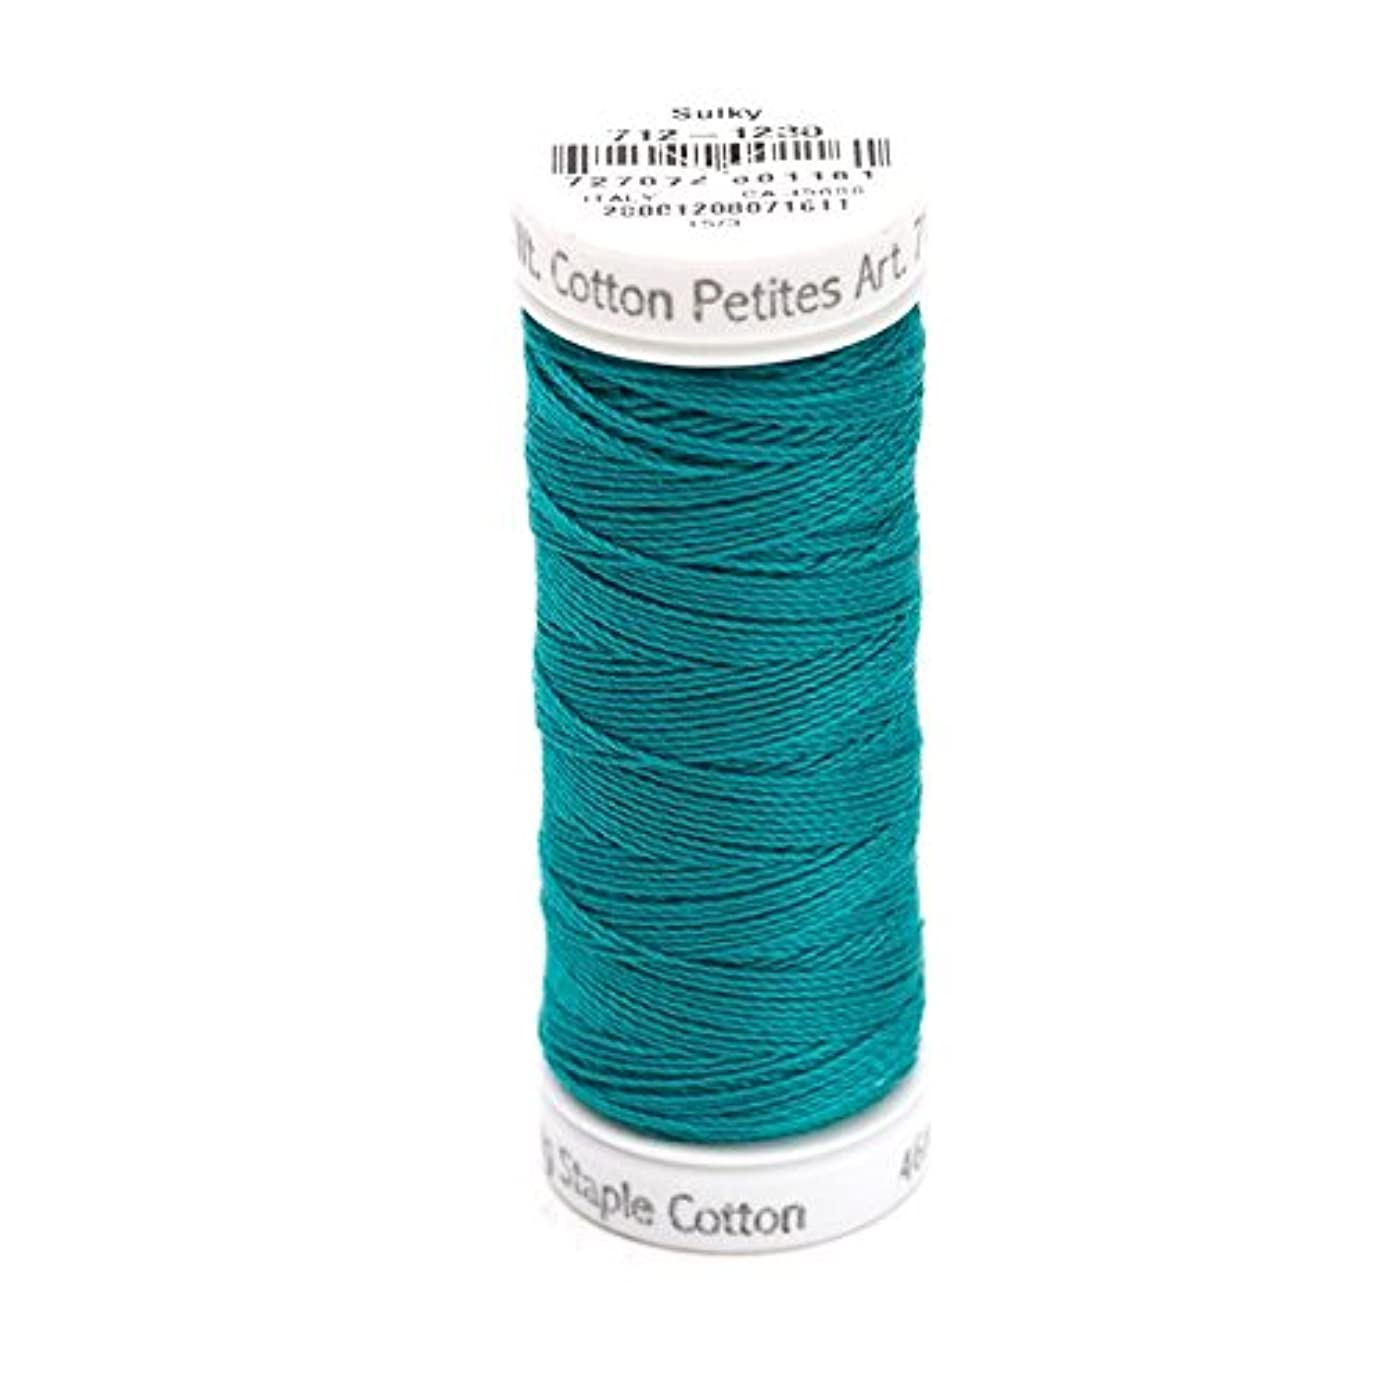 Sulky Of America 12wt 2-Ply Cotton Thread, 50 yd, Dark Teal wuuazc7375